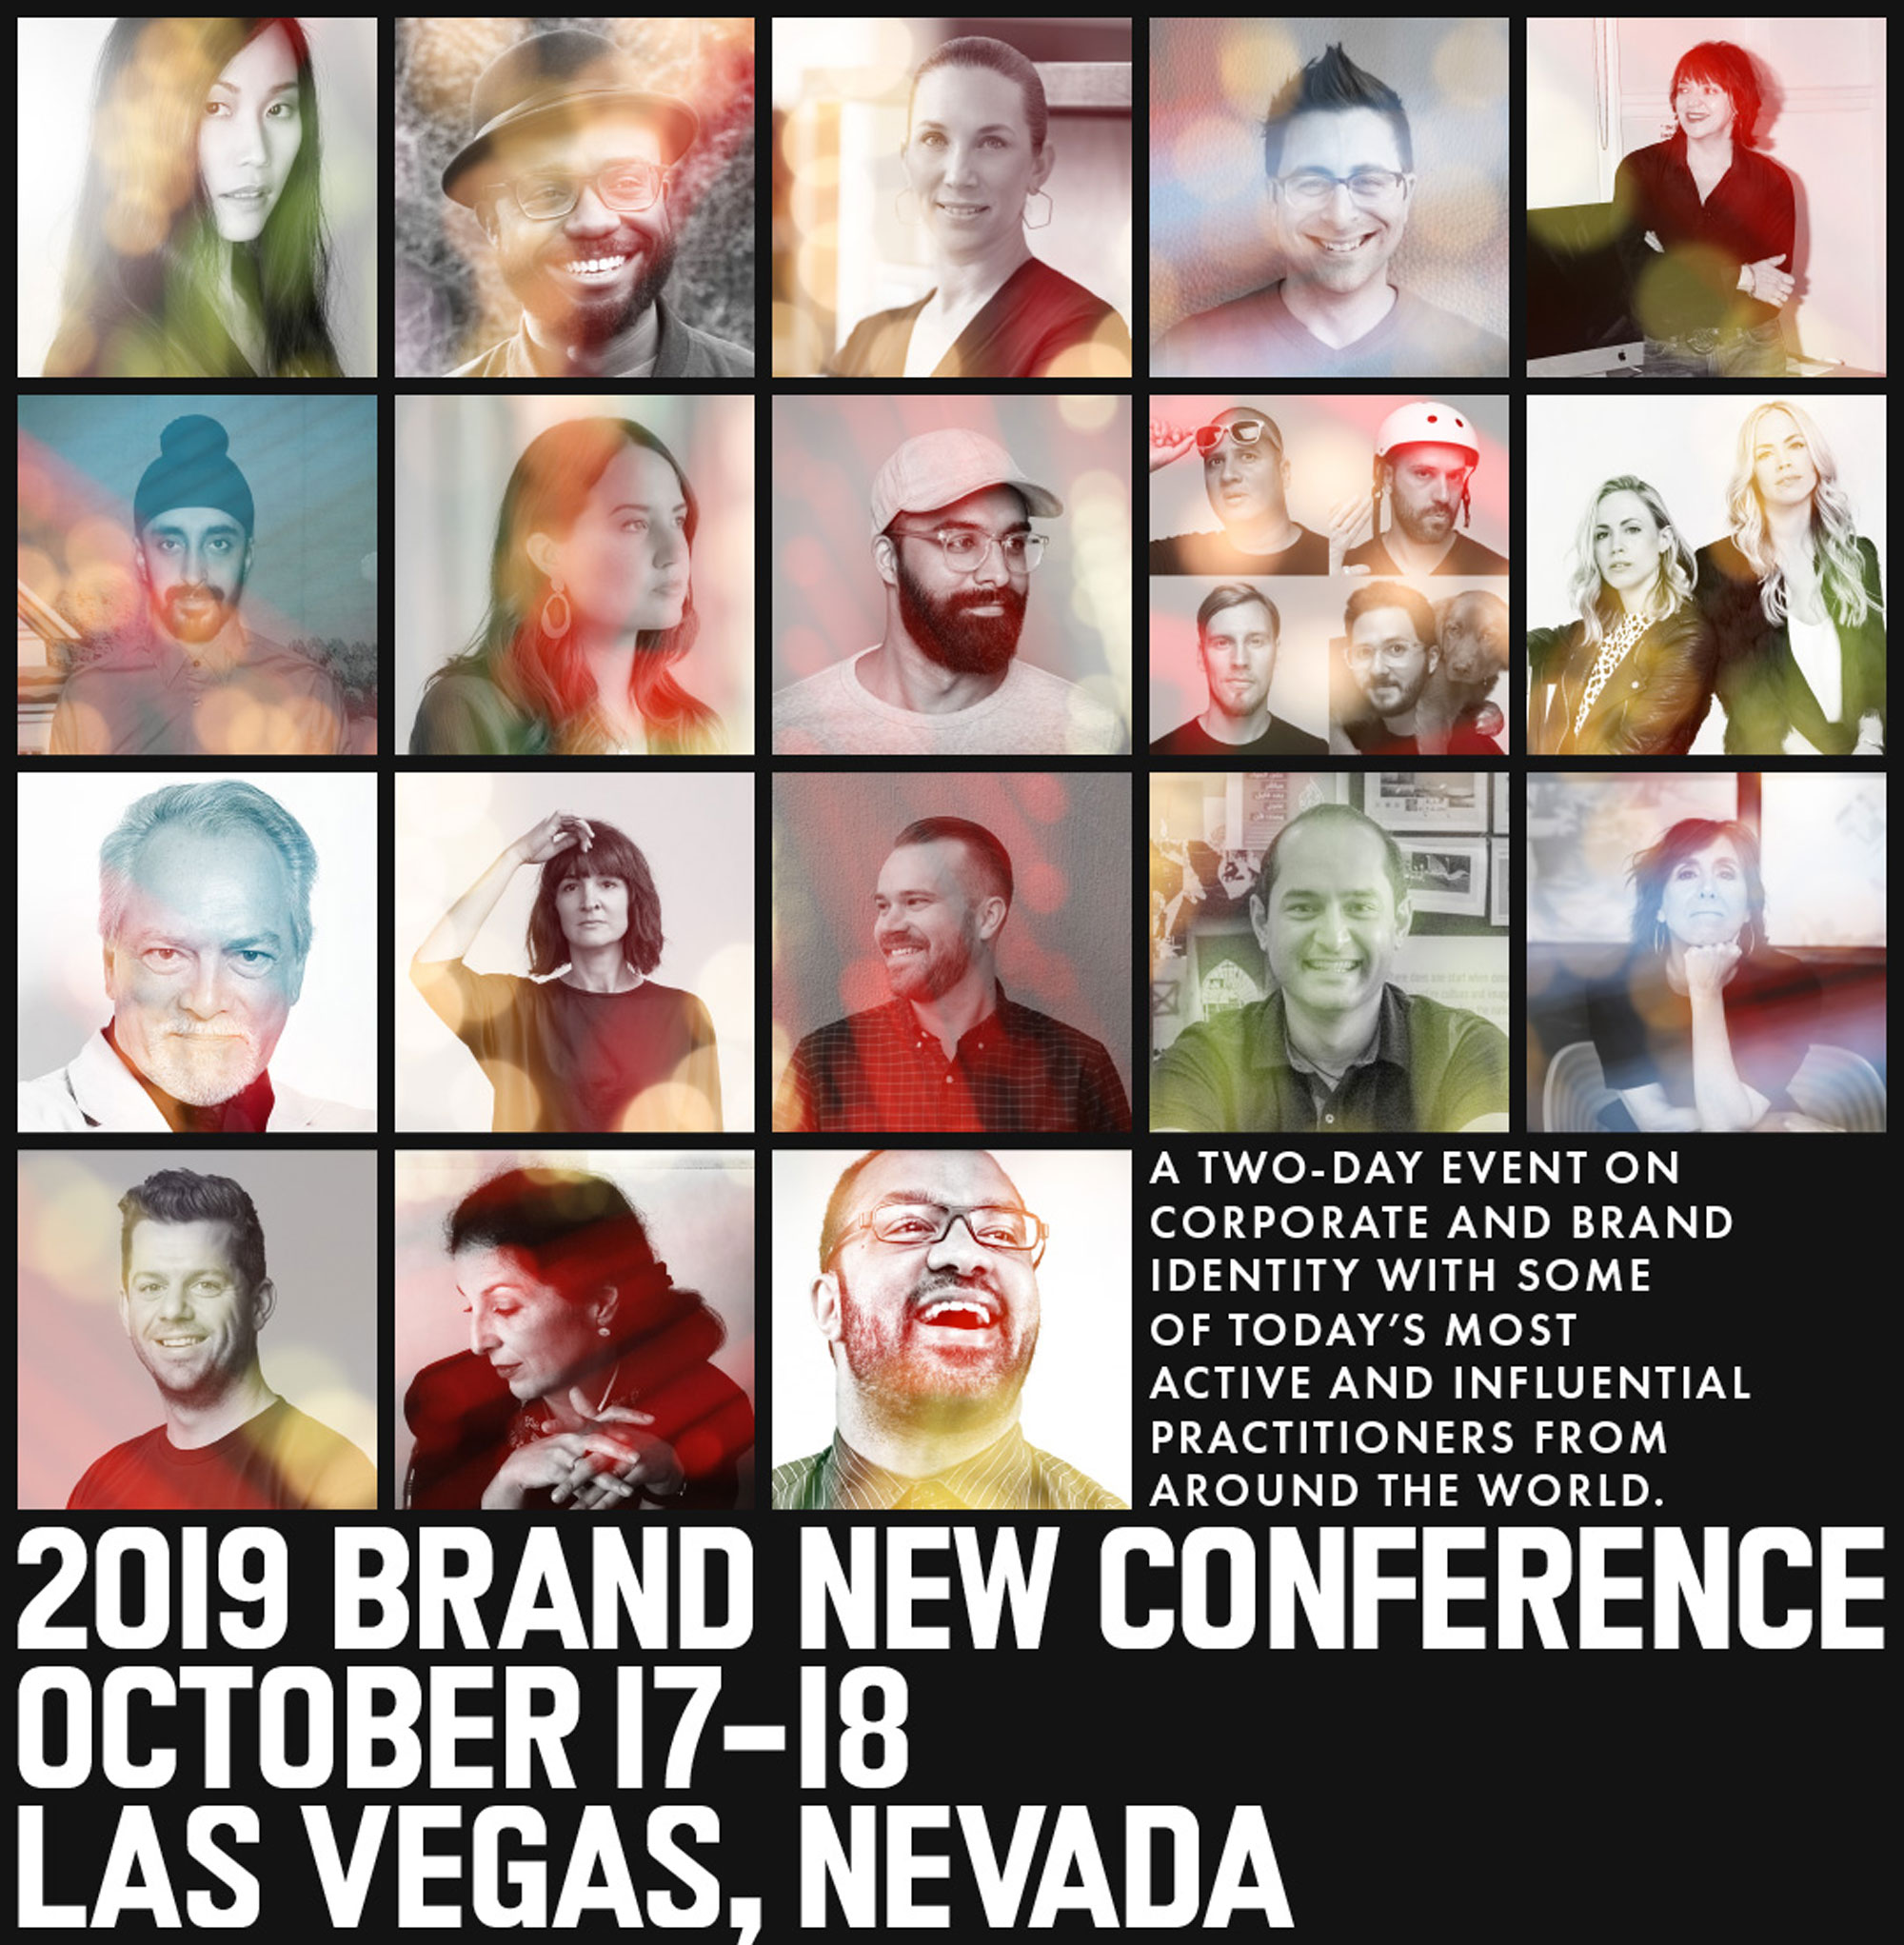 Brand New Conference 2019